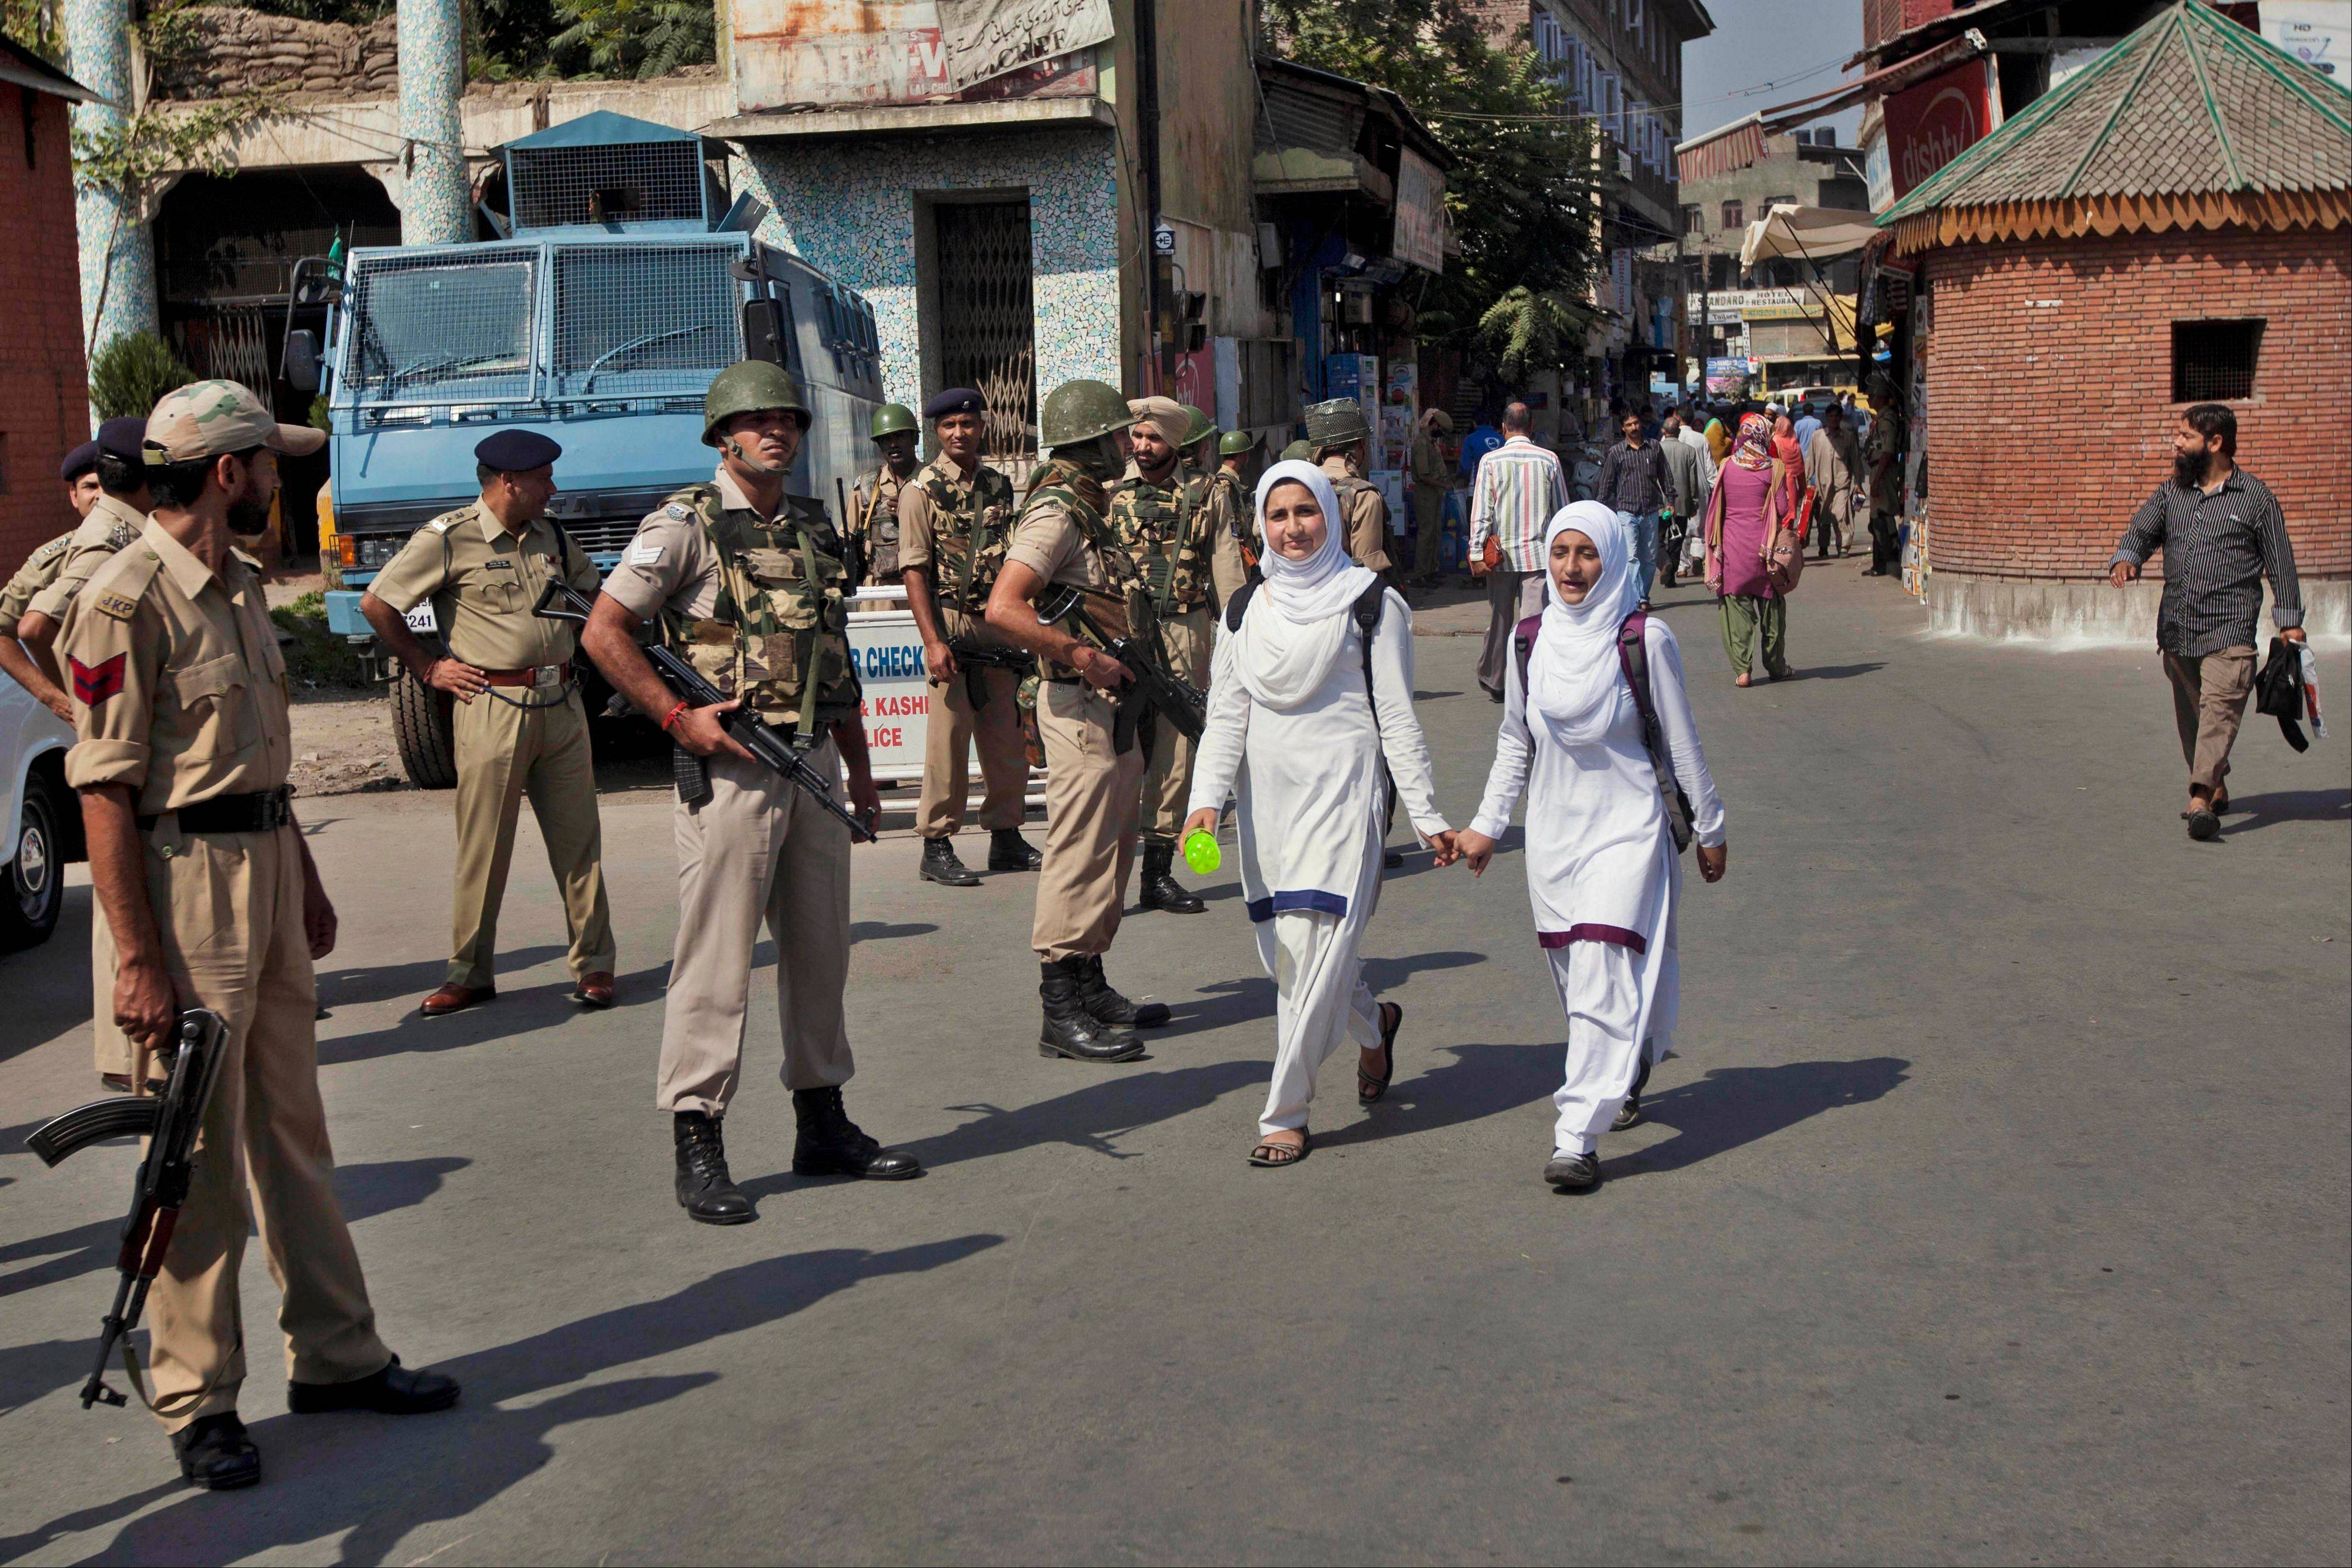 Associated PressKashmiri schoolchildren walk past Indian paramilitary soldiers as they stand guard in Srinagar, India, Saturday, Oct. 5. The Indian army said Saturday that it killed seven suspected rebels in two separate gun battles near the heavily militarized line dividing the disputed Kashmir region between India and Pakistan.